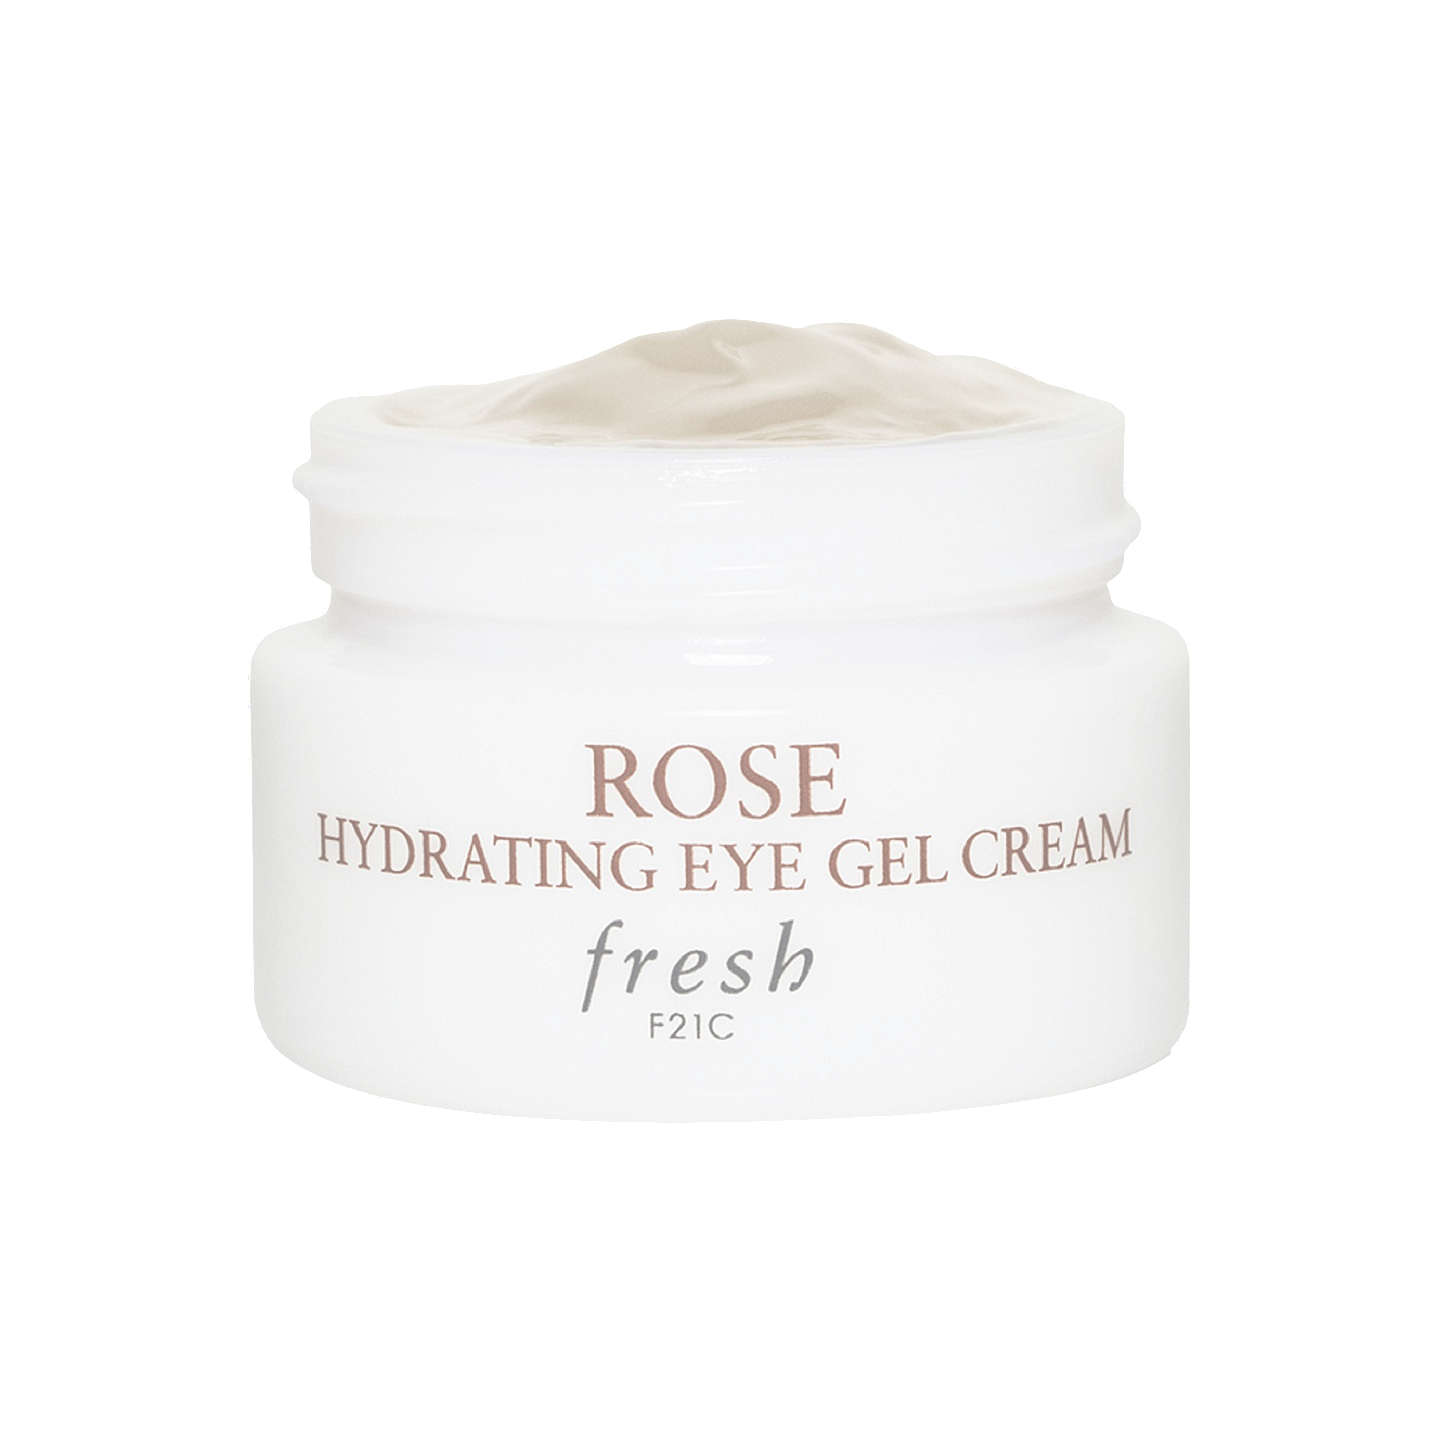 BuyFresh Rose Hydrating Eye Gel Cream, 15ml Online at johnlewis.com